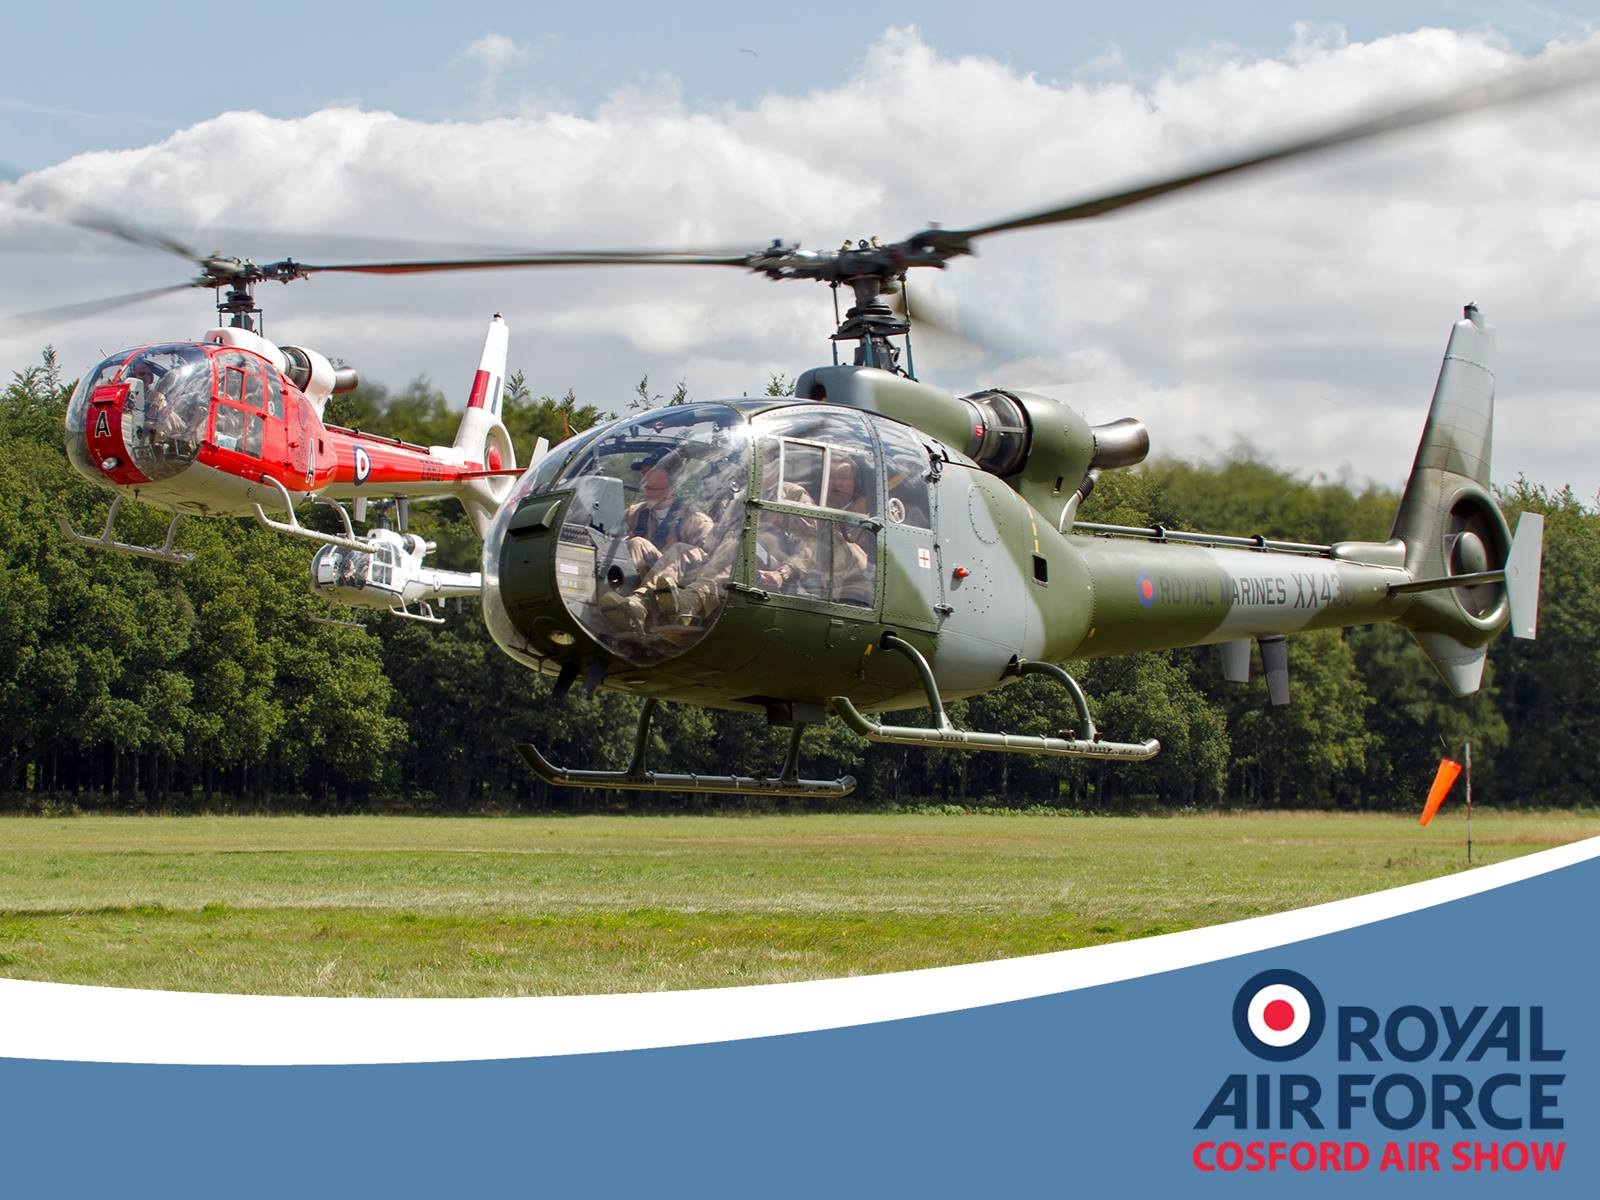 AIRSHOW NEWS: Gazelle Squadron to debut at RAF Cosford Air Show